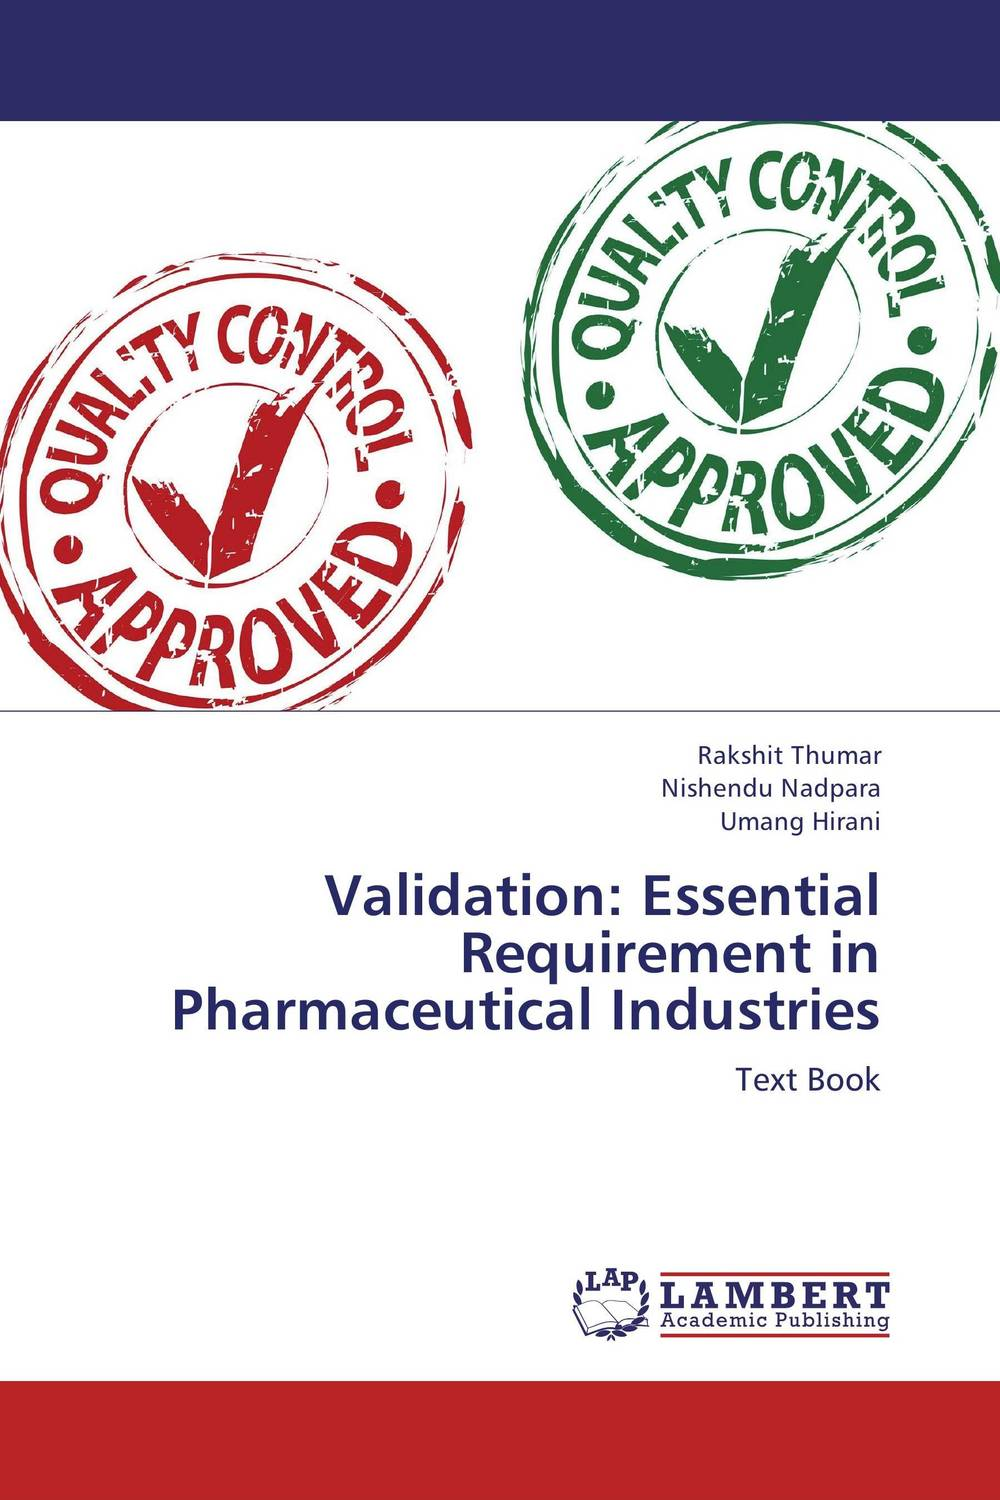 Validation: Essential Requirement in Pharmaceutical Industries